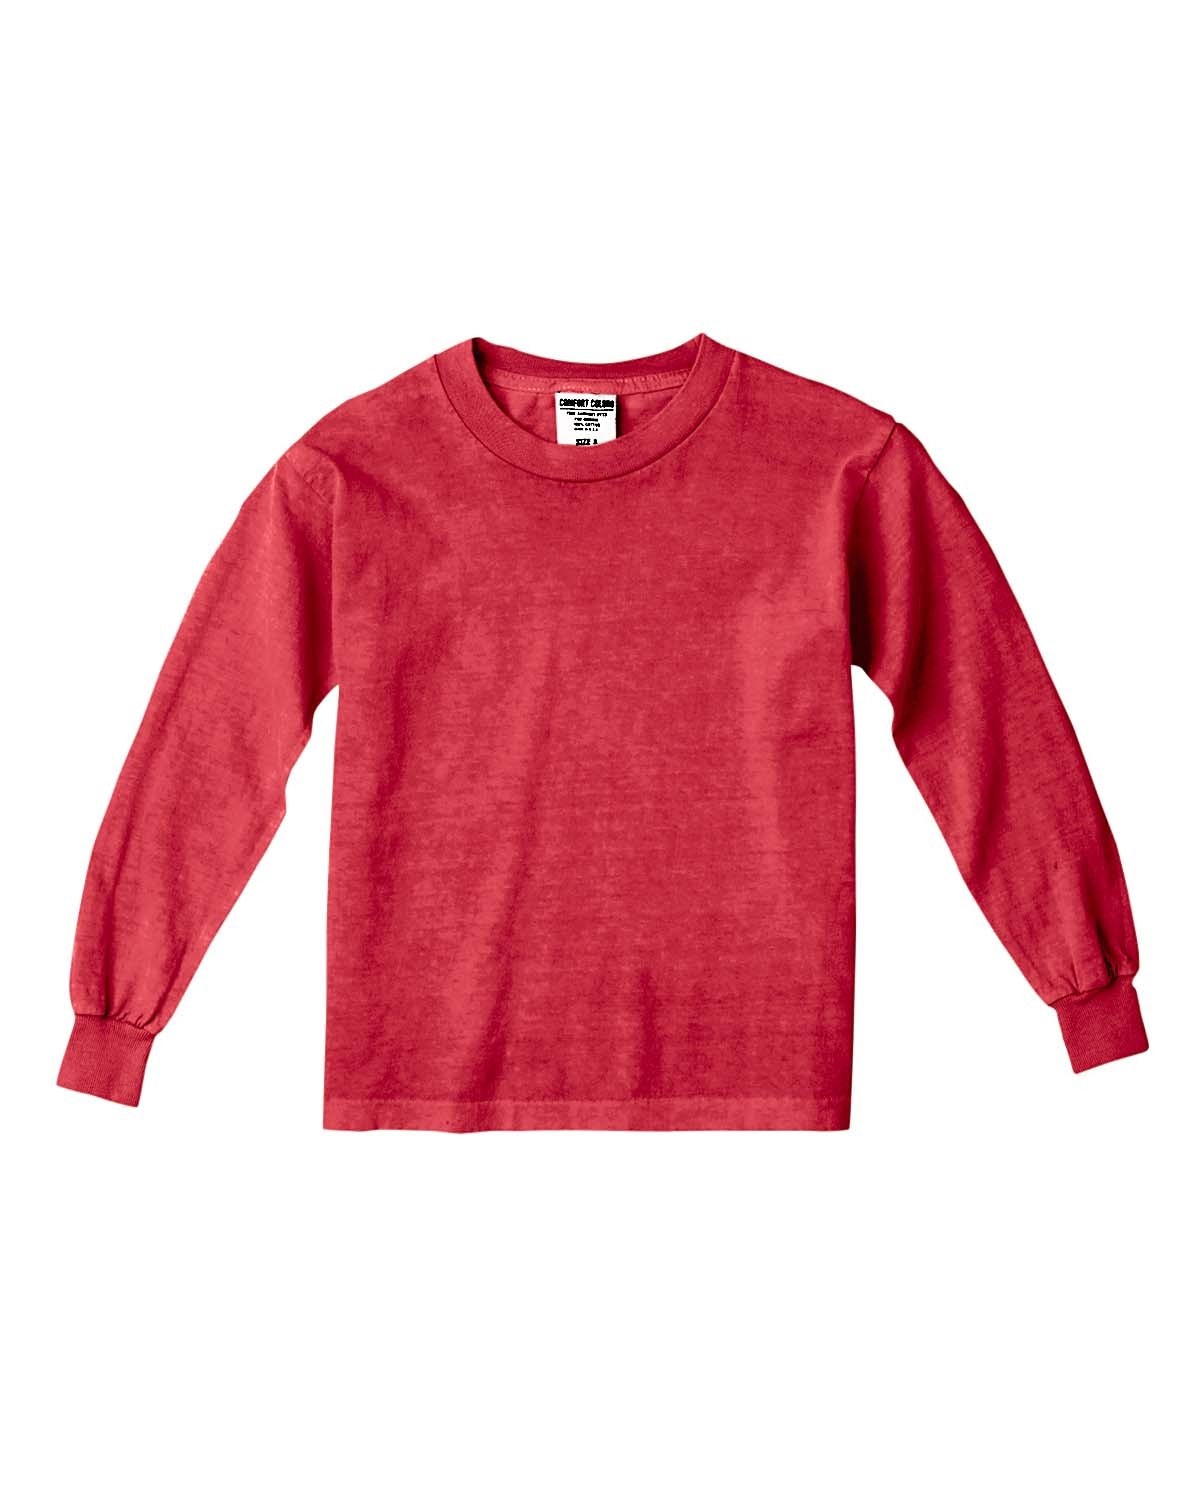 C3483 Comfort Colors Drop Ship PAPRIKA